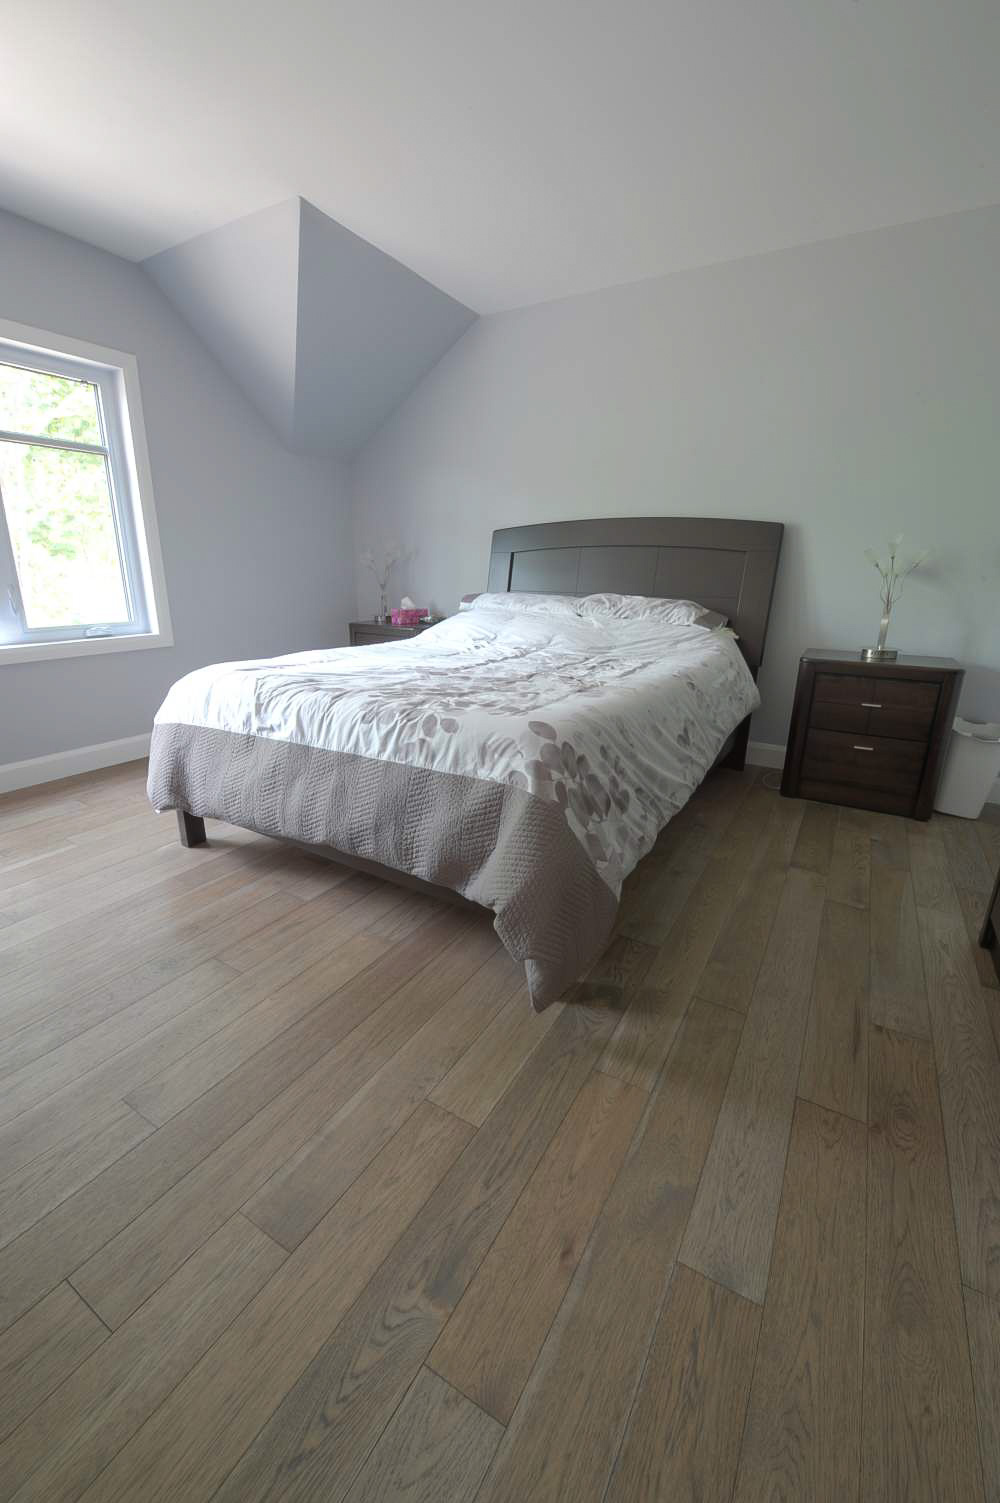 stained hickory hardwood bedroom floor.jpg